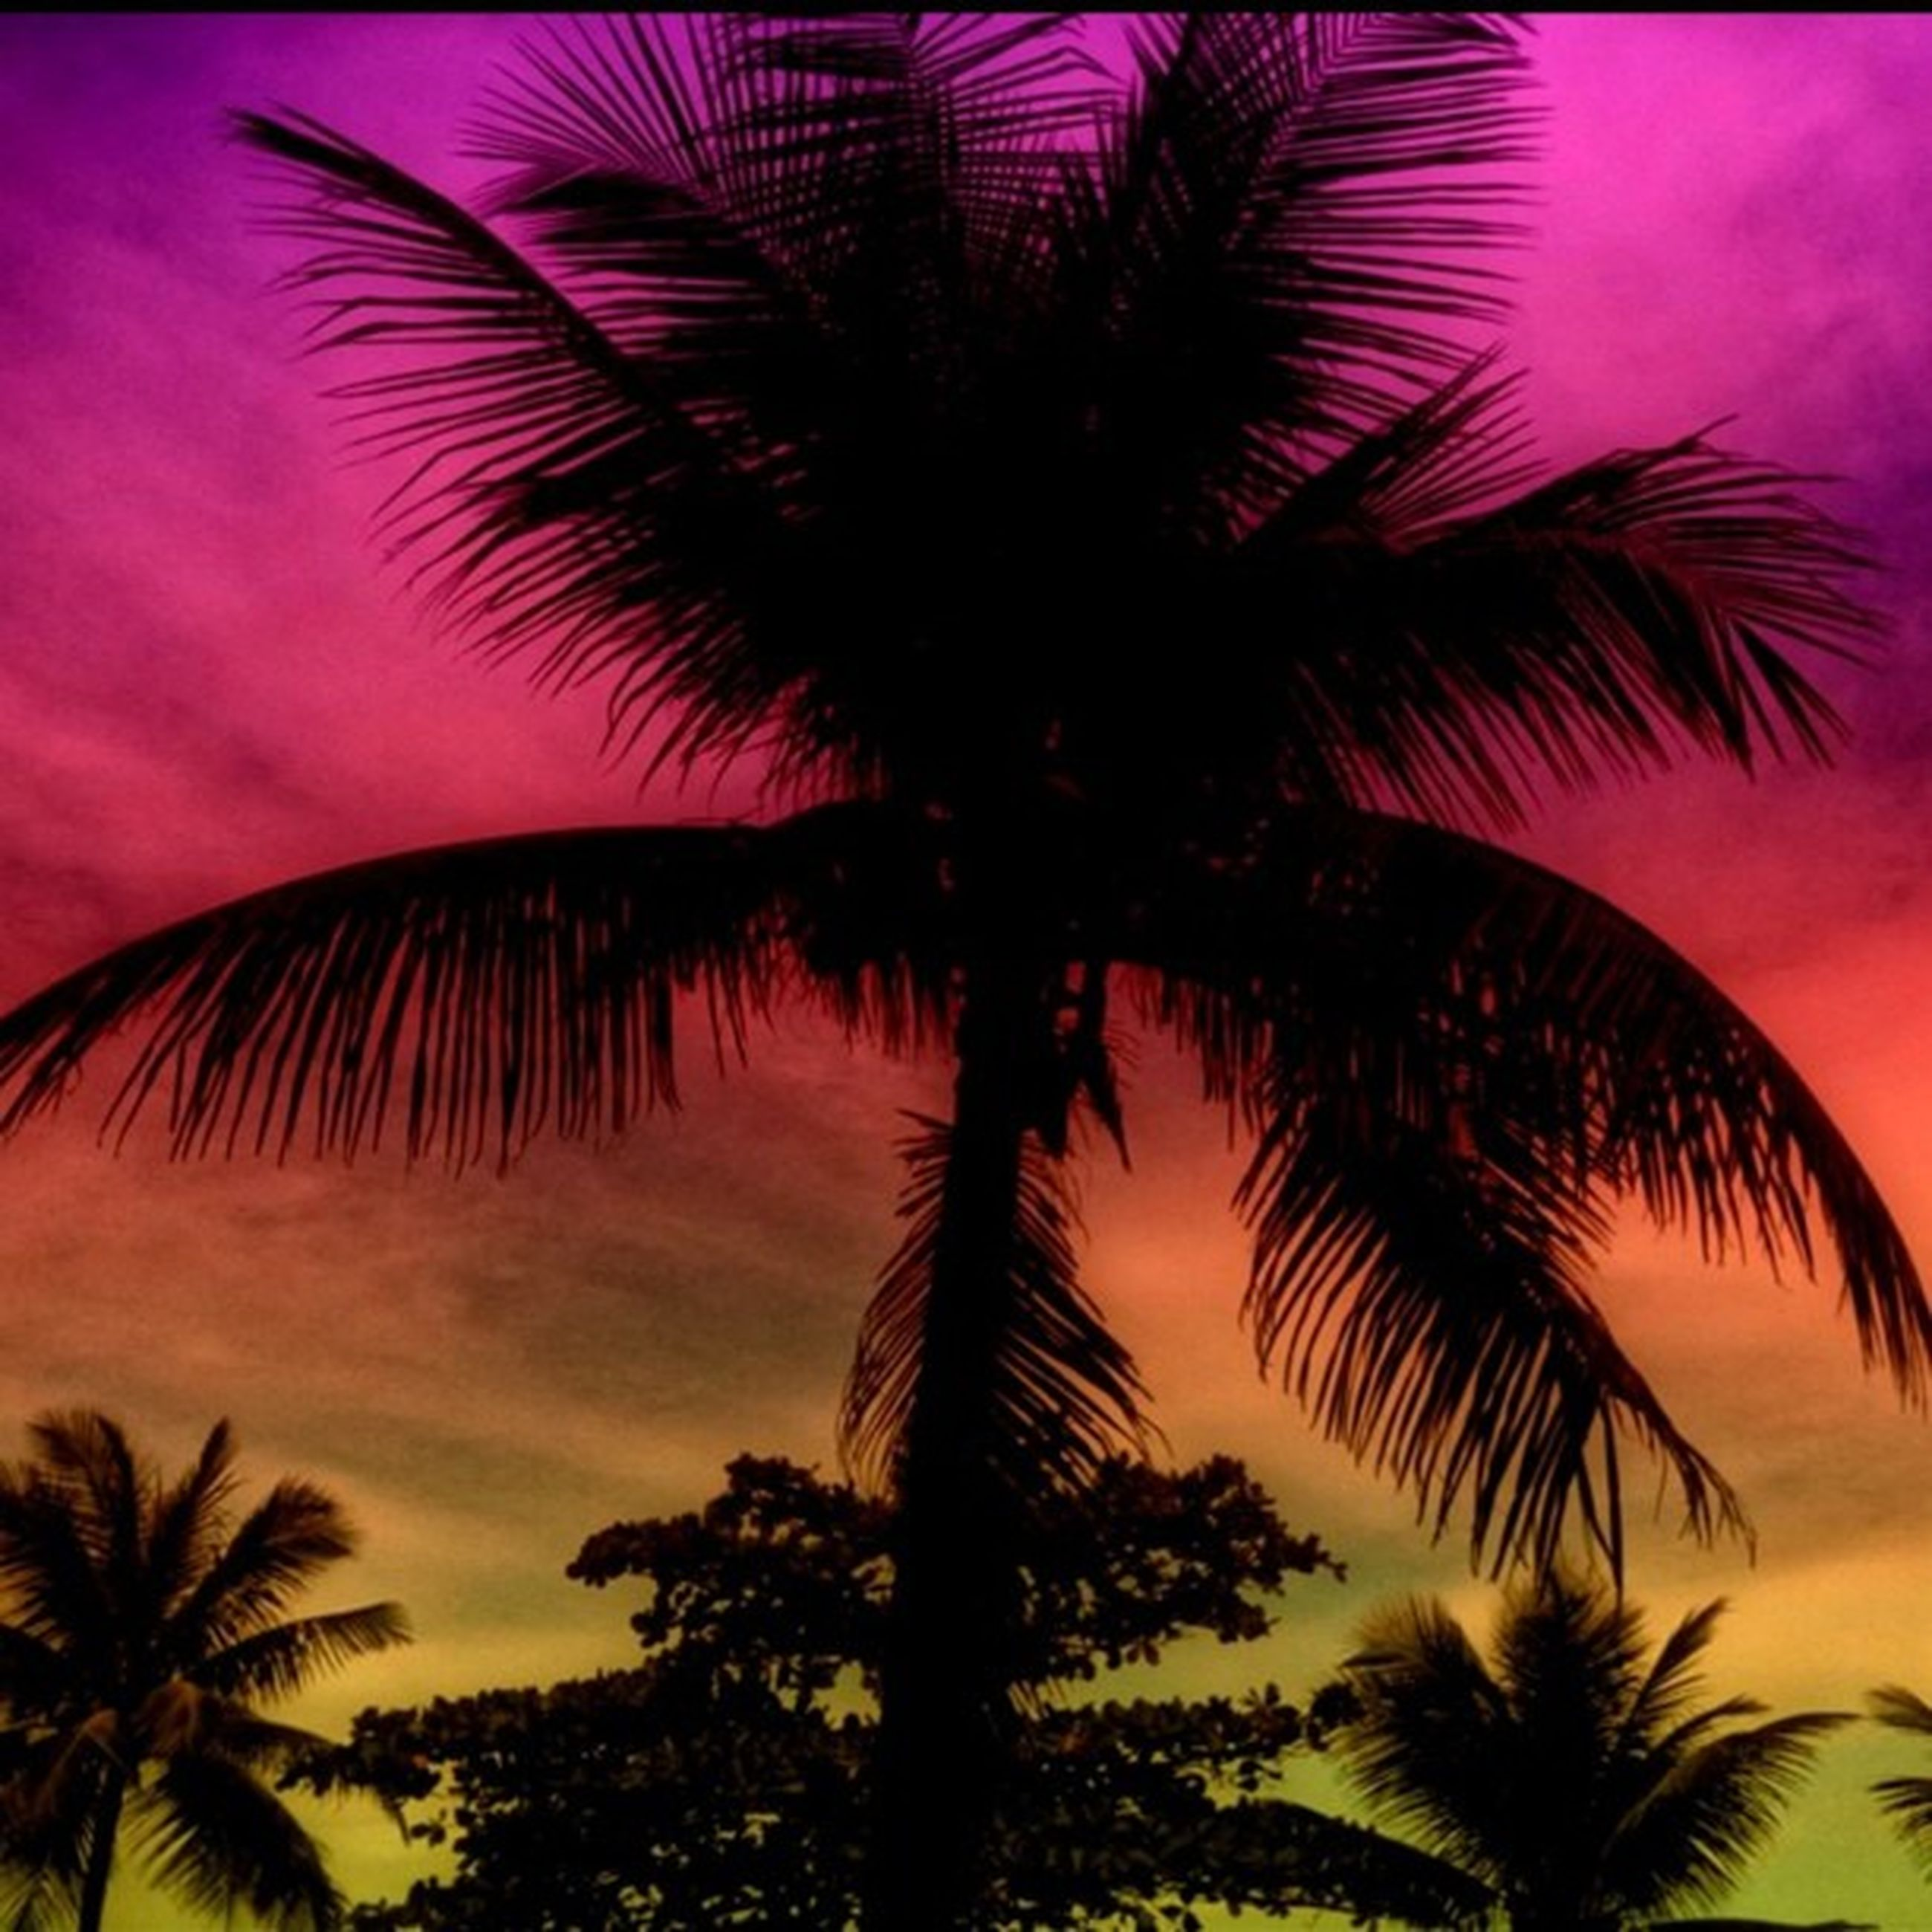 palm tree, low angle view, tree, sky, sunset, silhouette, growth, beauty in nature, nature, tranquility, scenics, cloud - sky, palm leaf, outdoors, no people, tranquil scene, coconut palm tree, palm frond, dusk, orange color